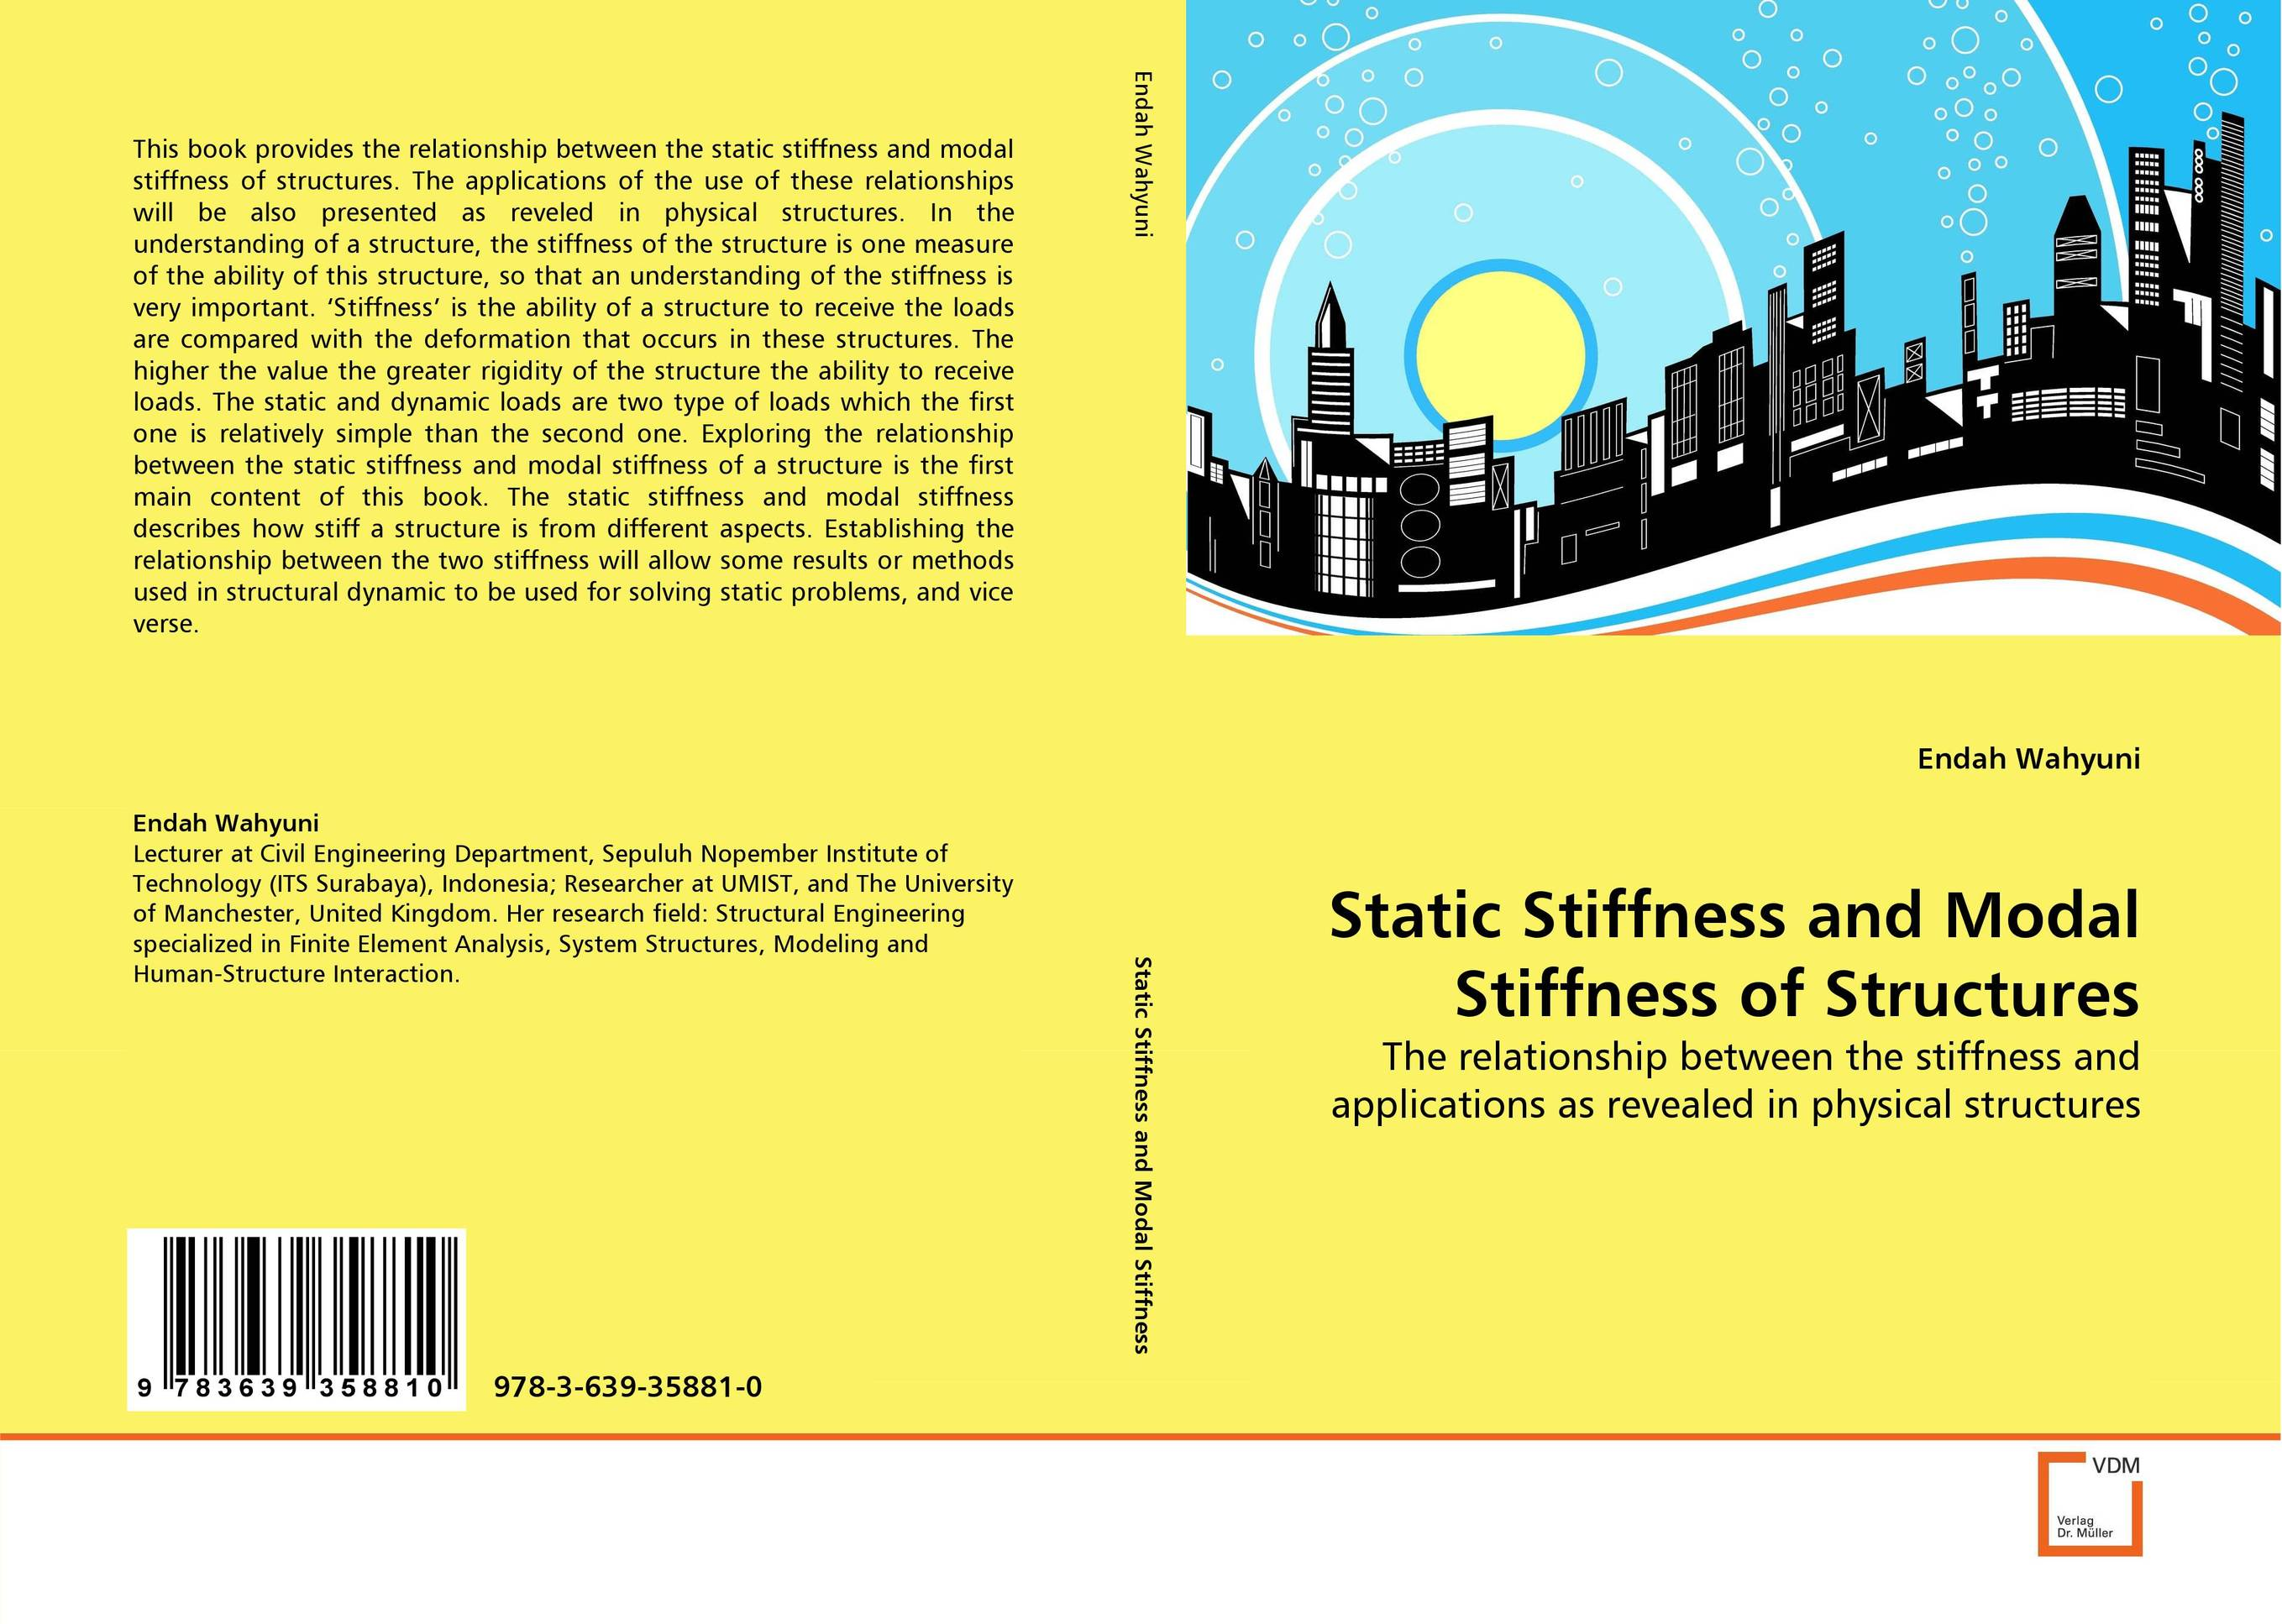 Static Stiffness and Modal Stiffness of Structures